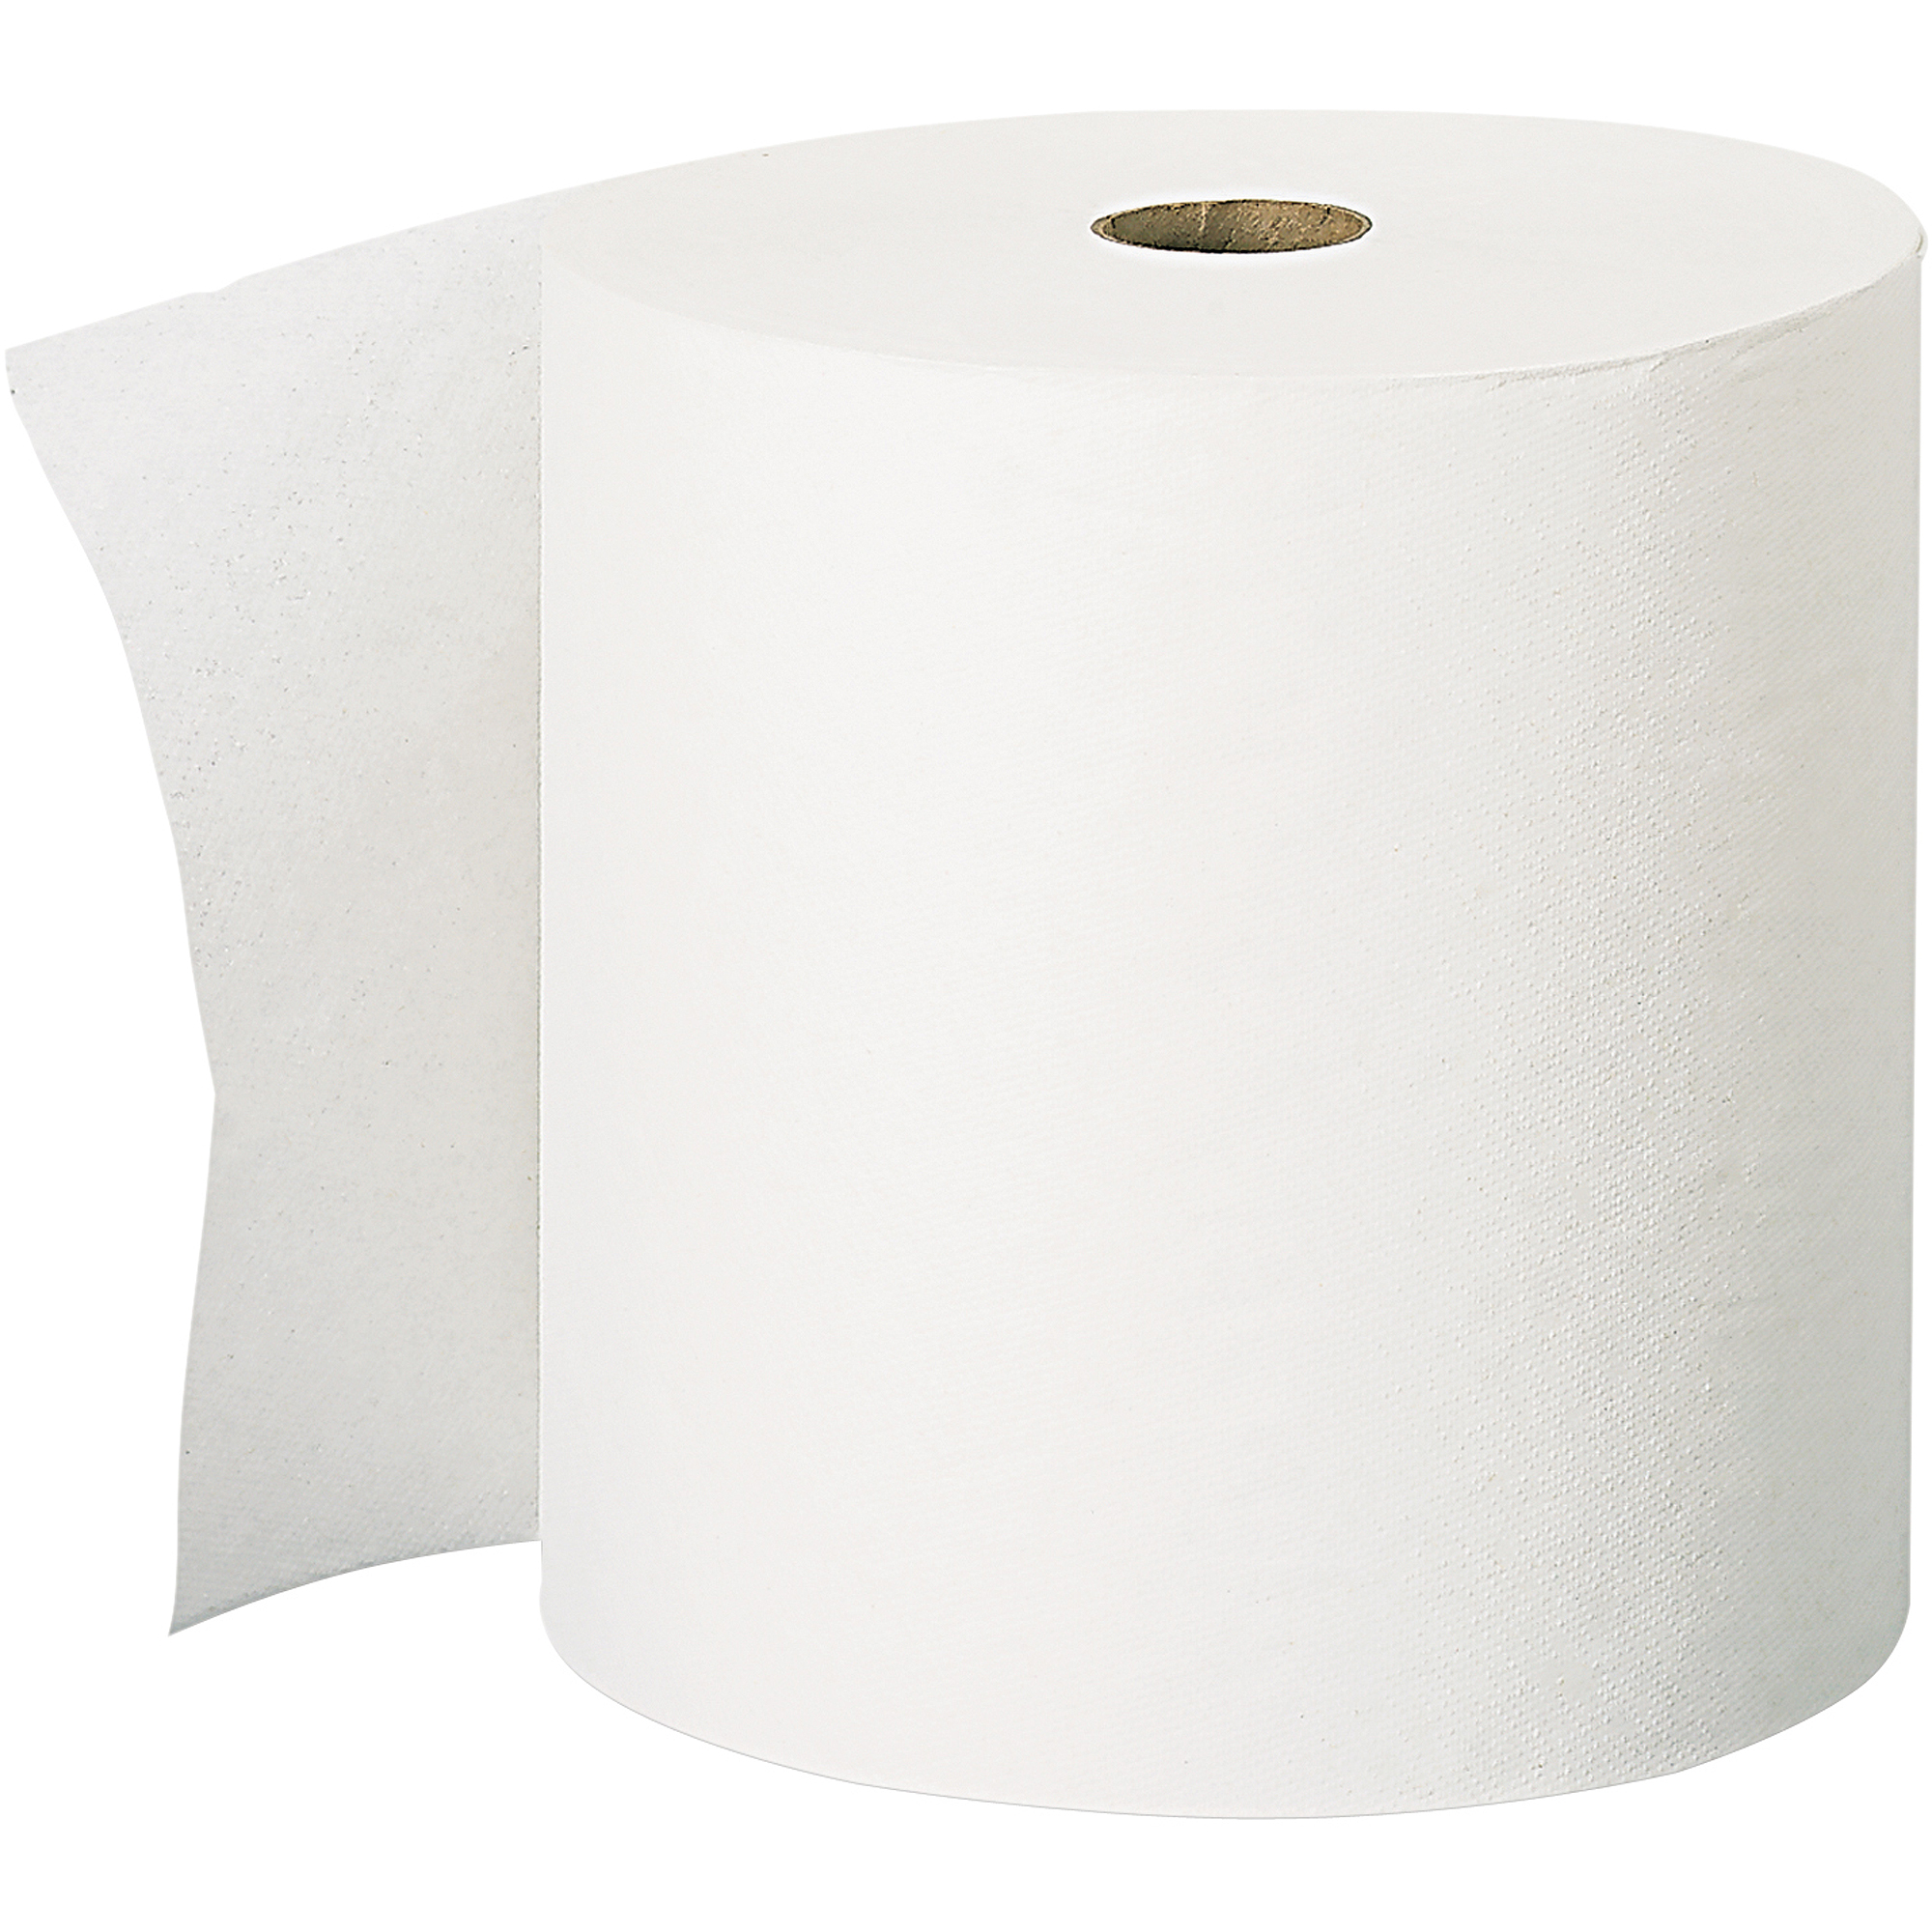 Scott High-Capacity Hard Roll Towels, White, 12 count